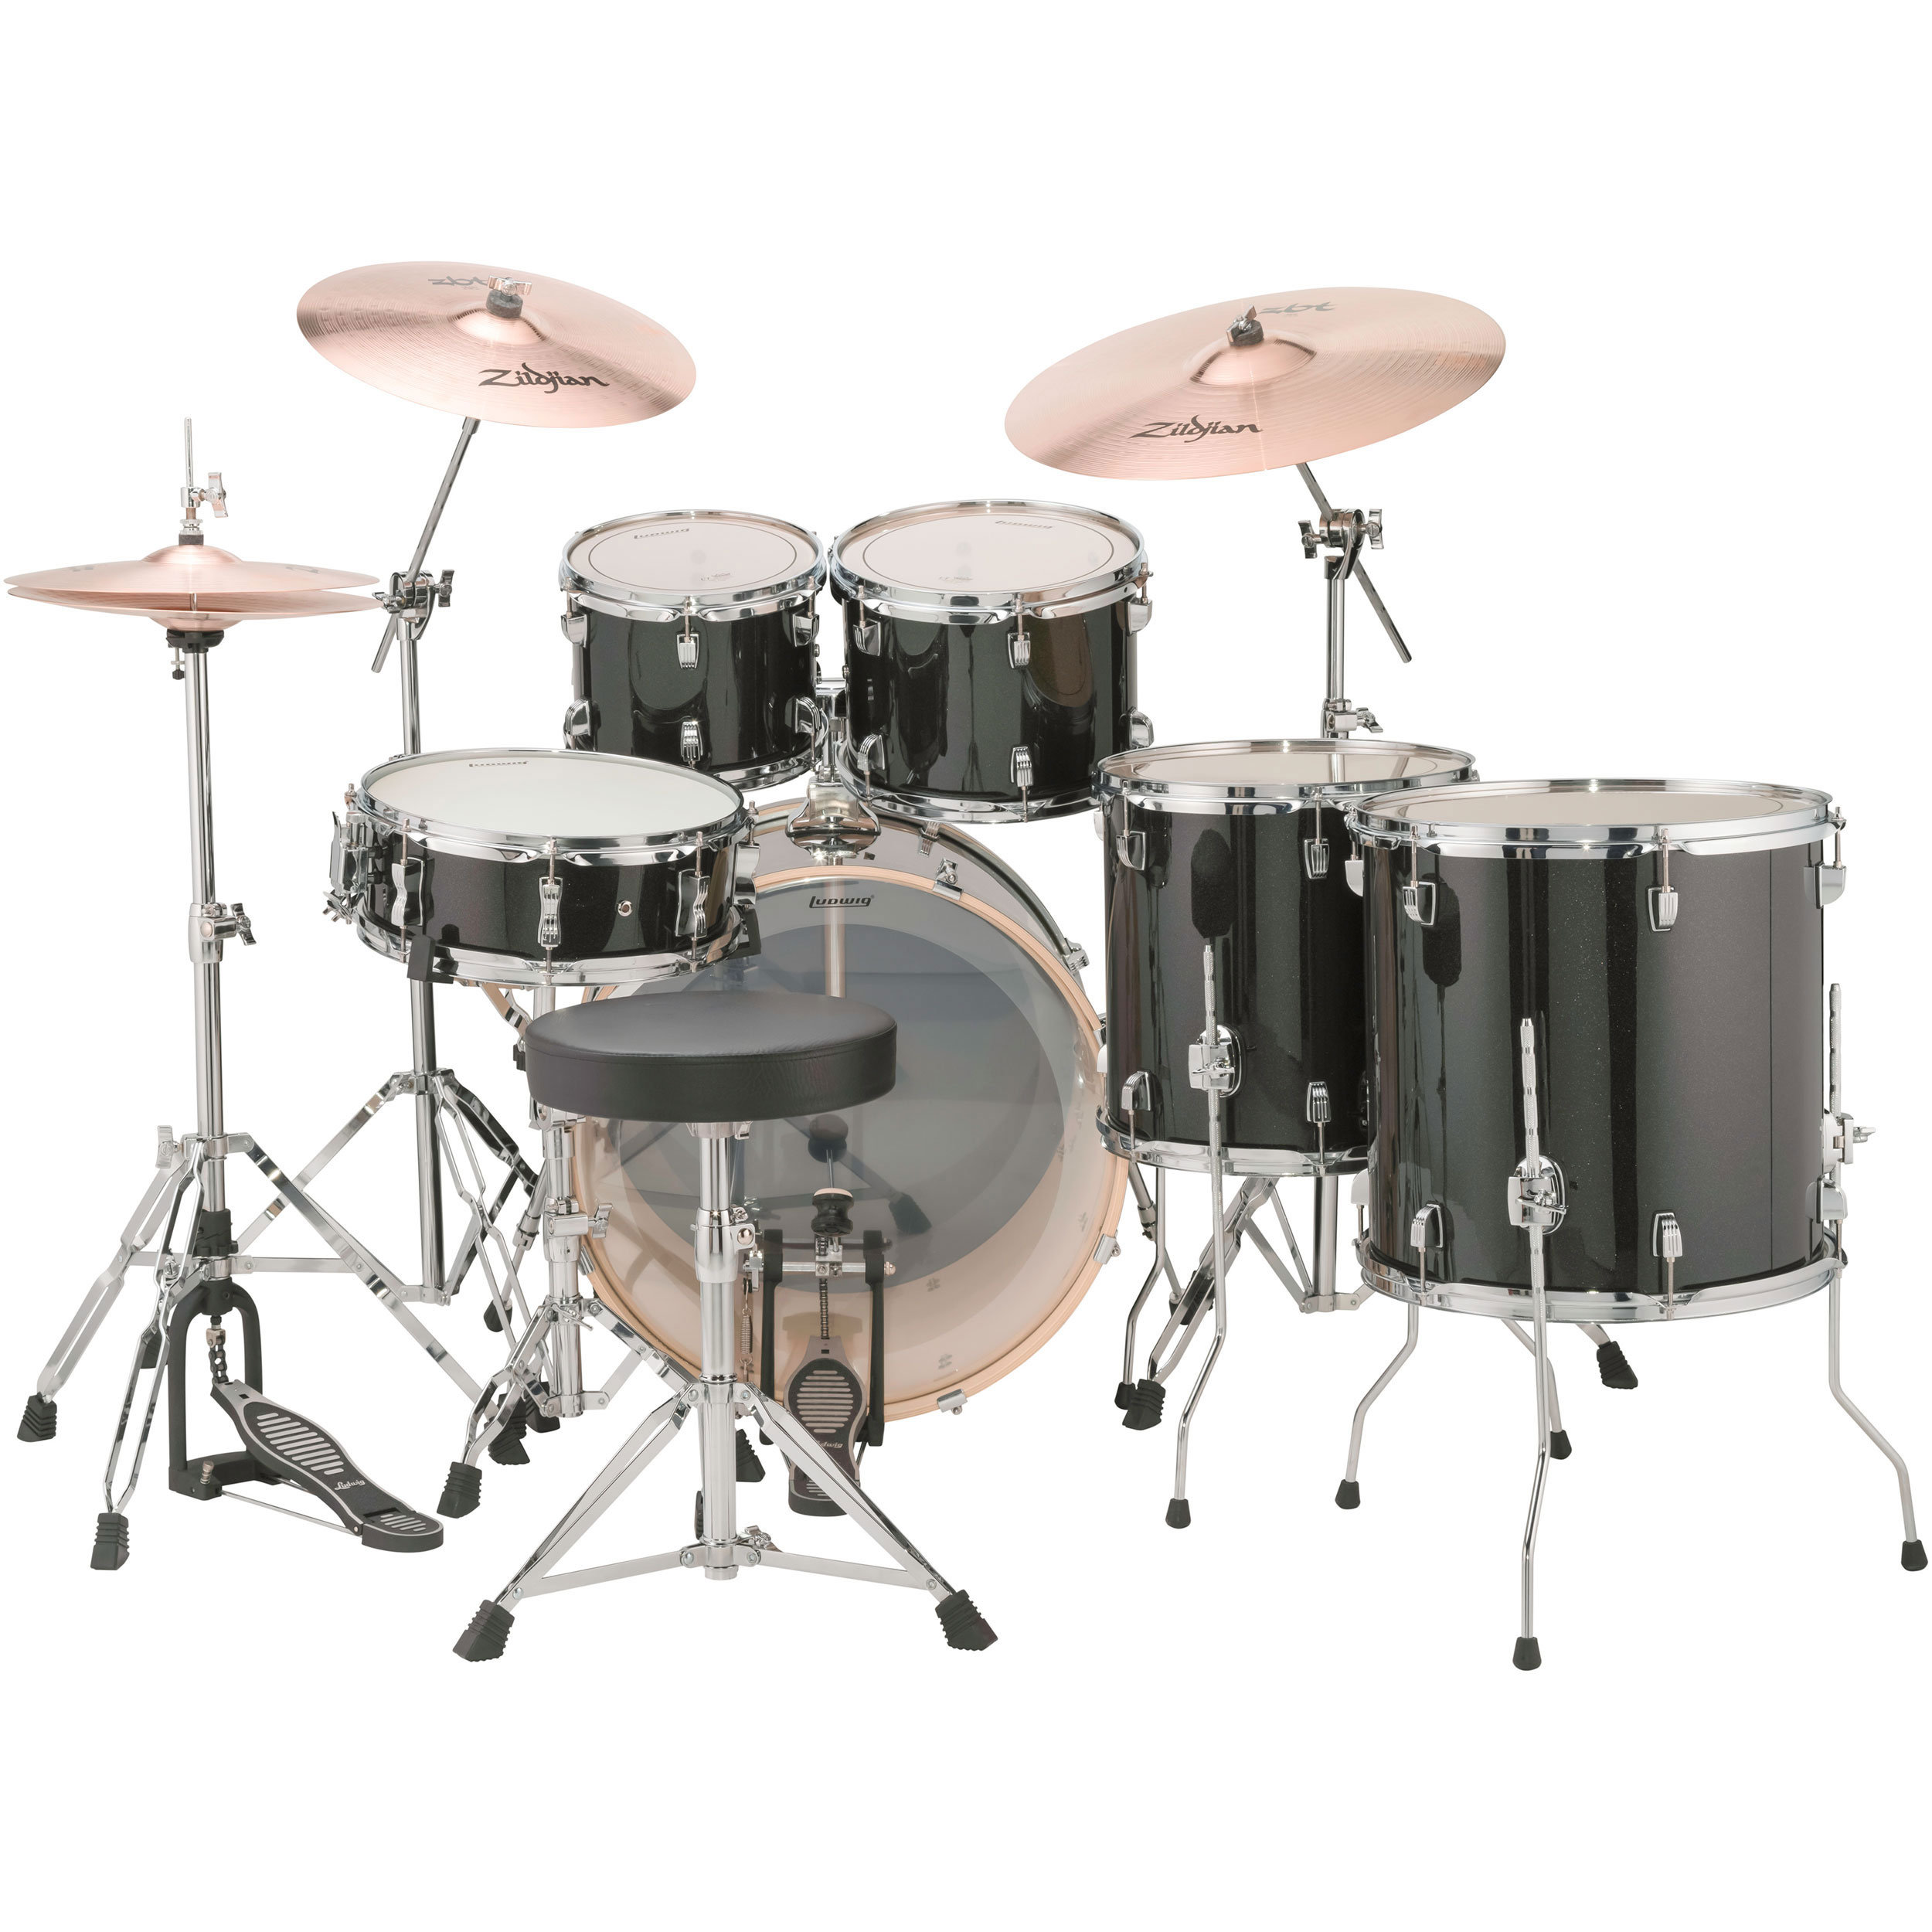 ludwig evolution 6 pc drum set with hardware cymbals 22 bass 10 12 14 16 toms 14 snare. Black Bedroom Furniture Sets. Home Design Ideas